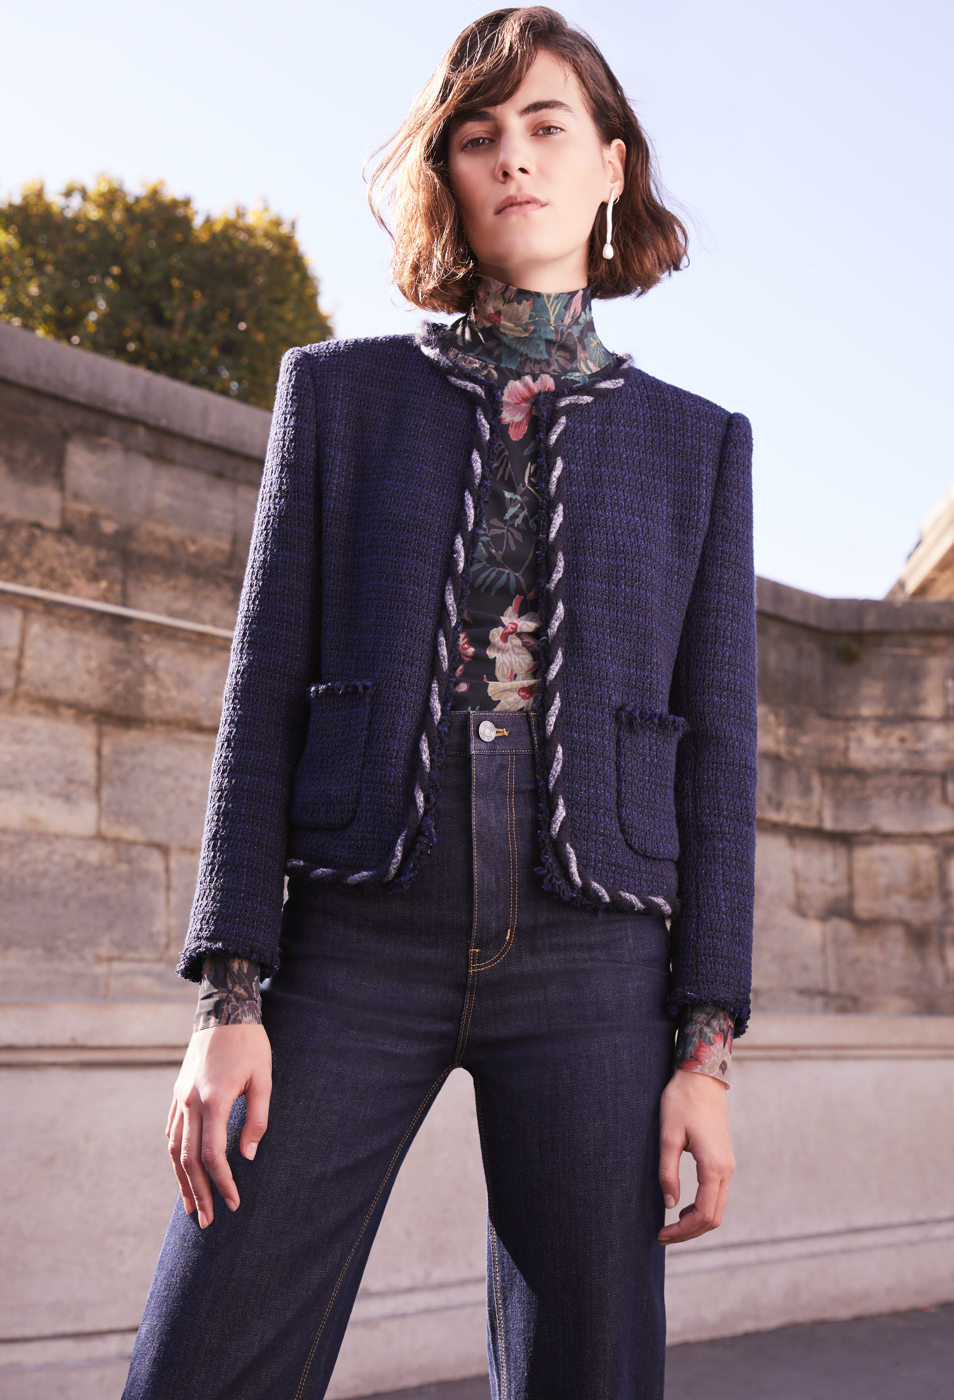 Model wearing tweed blazer and jeans